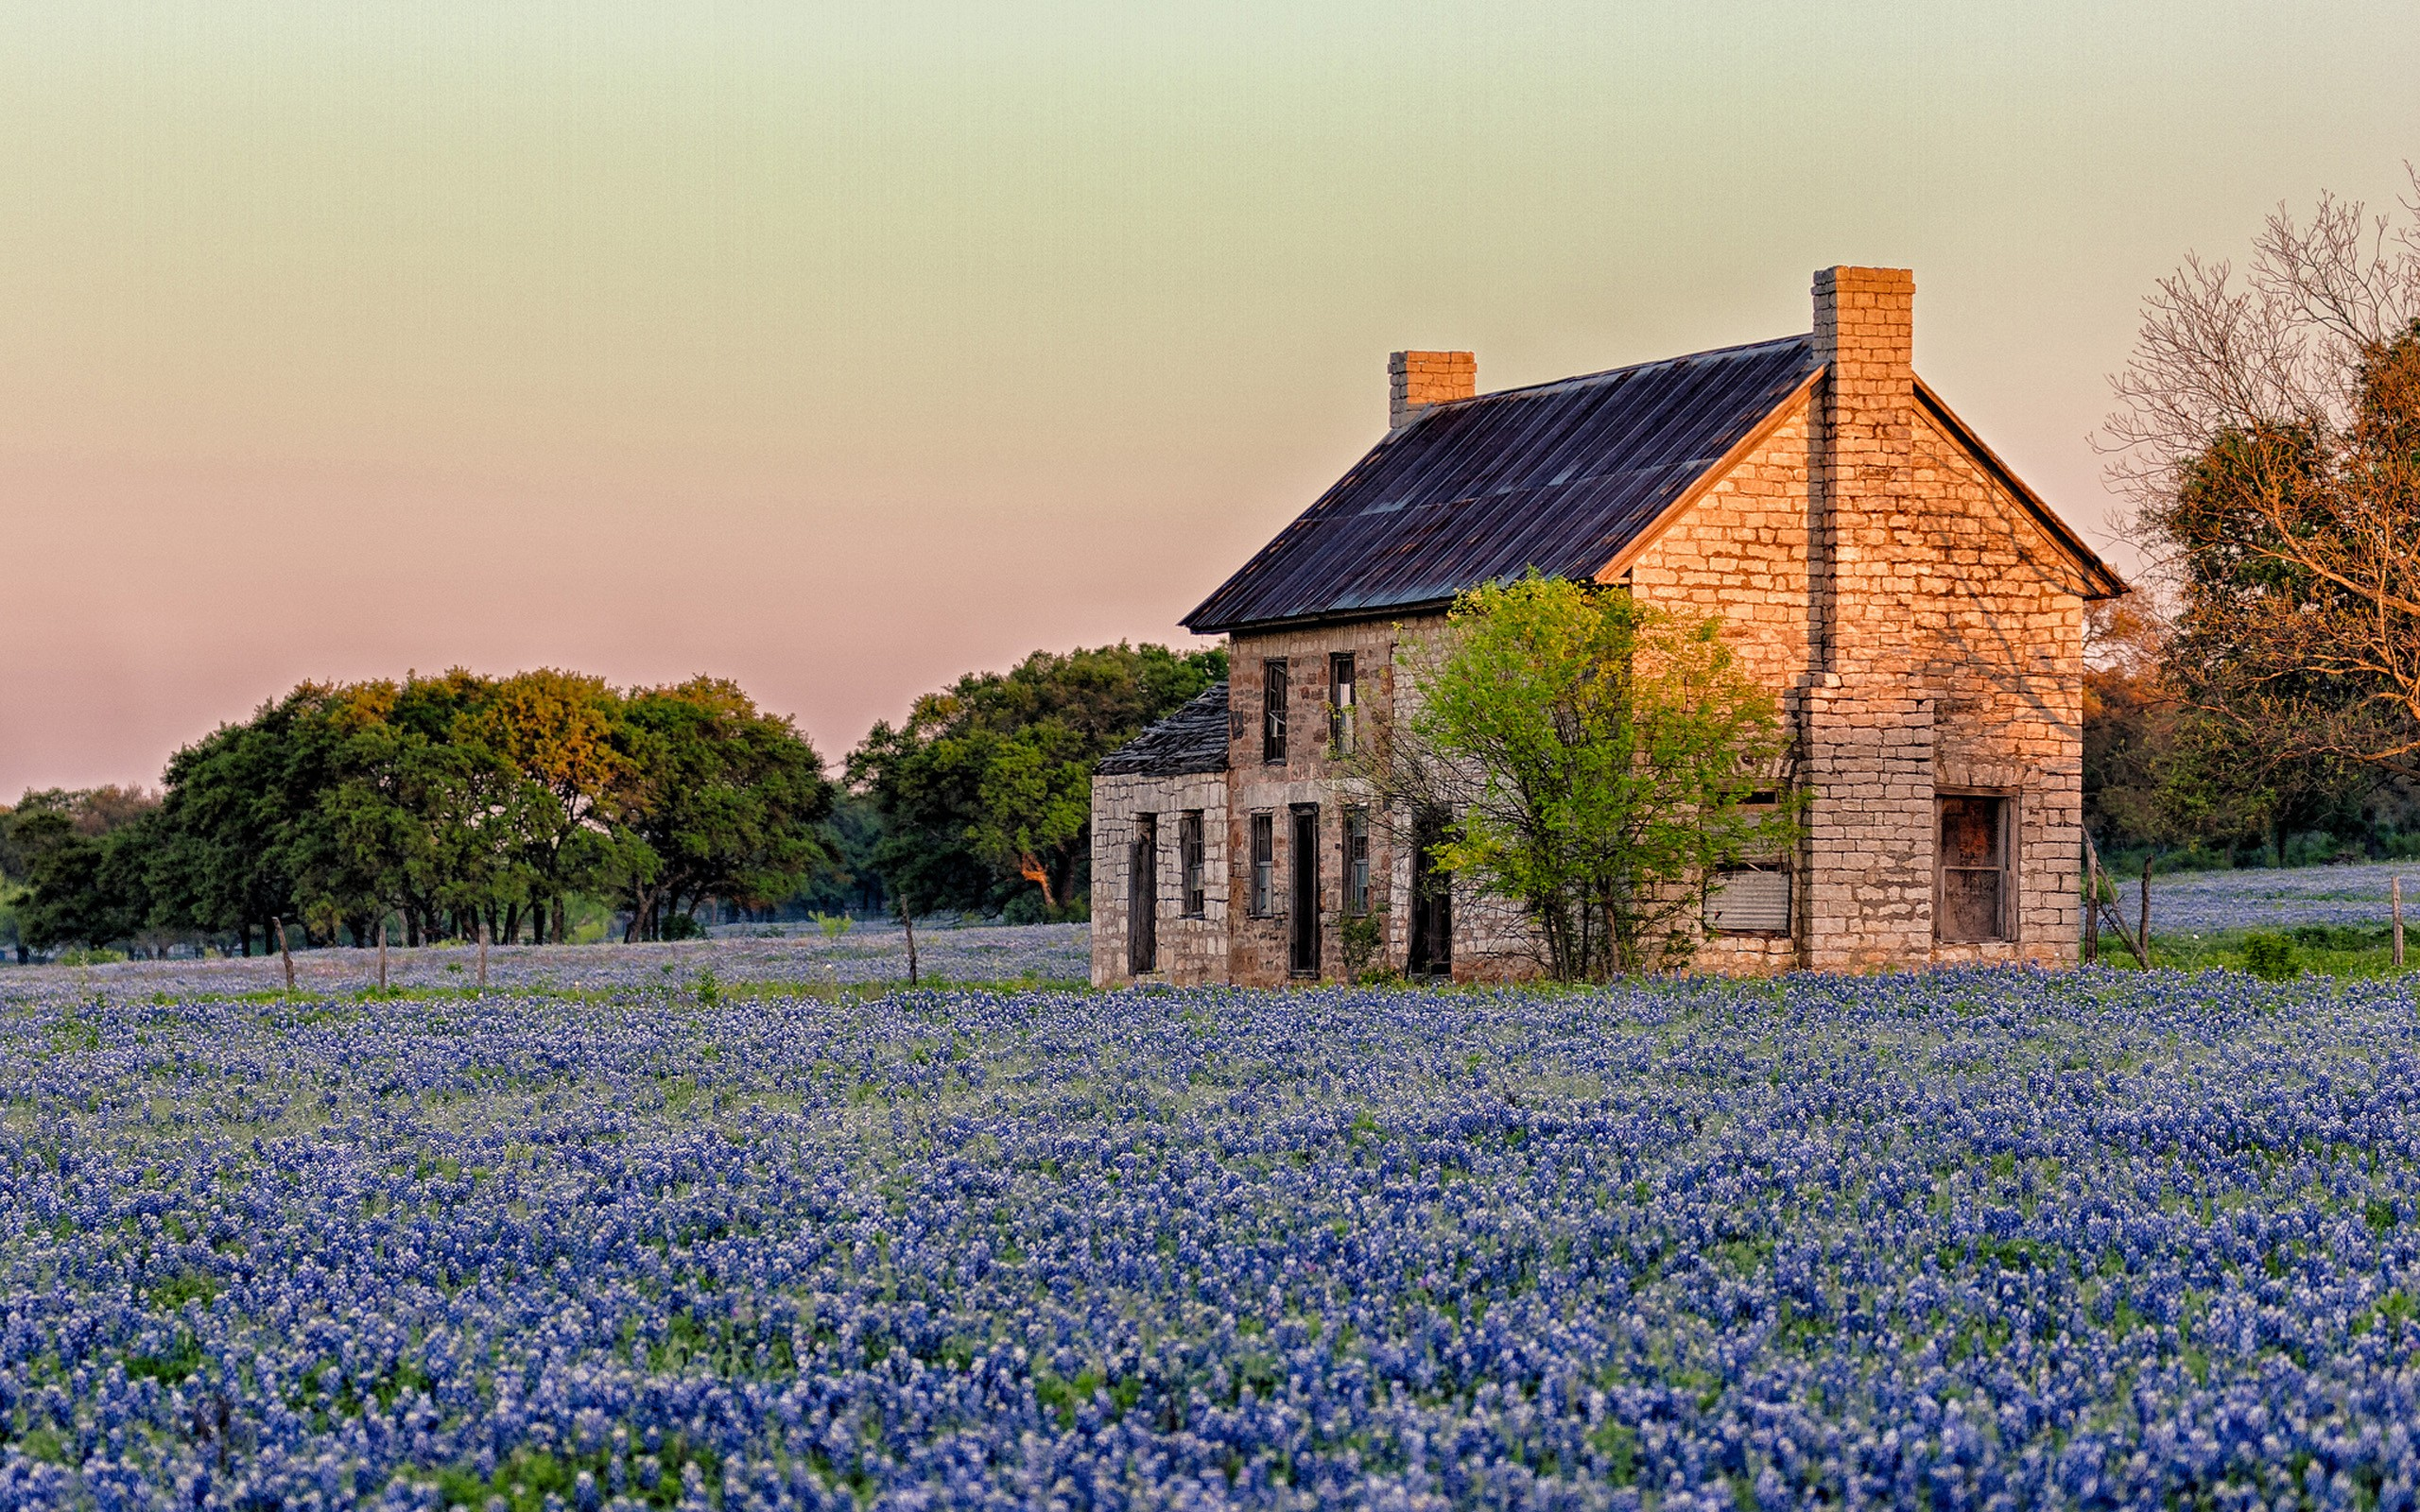 Texas sunlight blue flowers Bluebonnet hd wallpaper background   HD 2560x1600